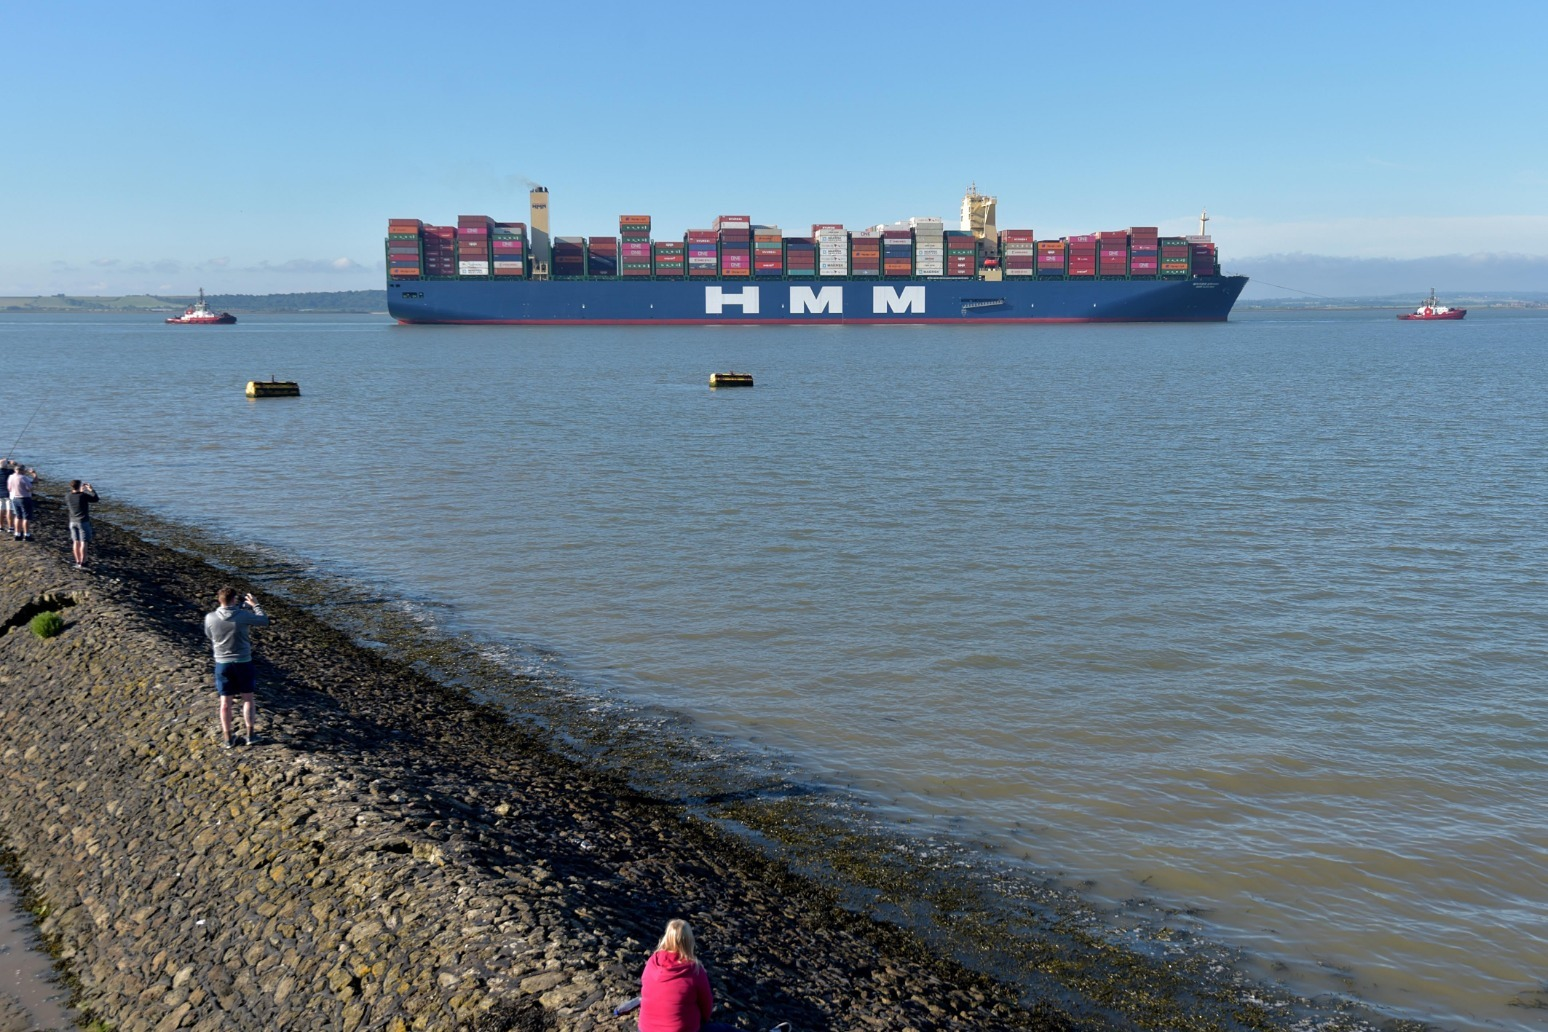 World's largest container ship arrives in UK for first time